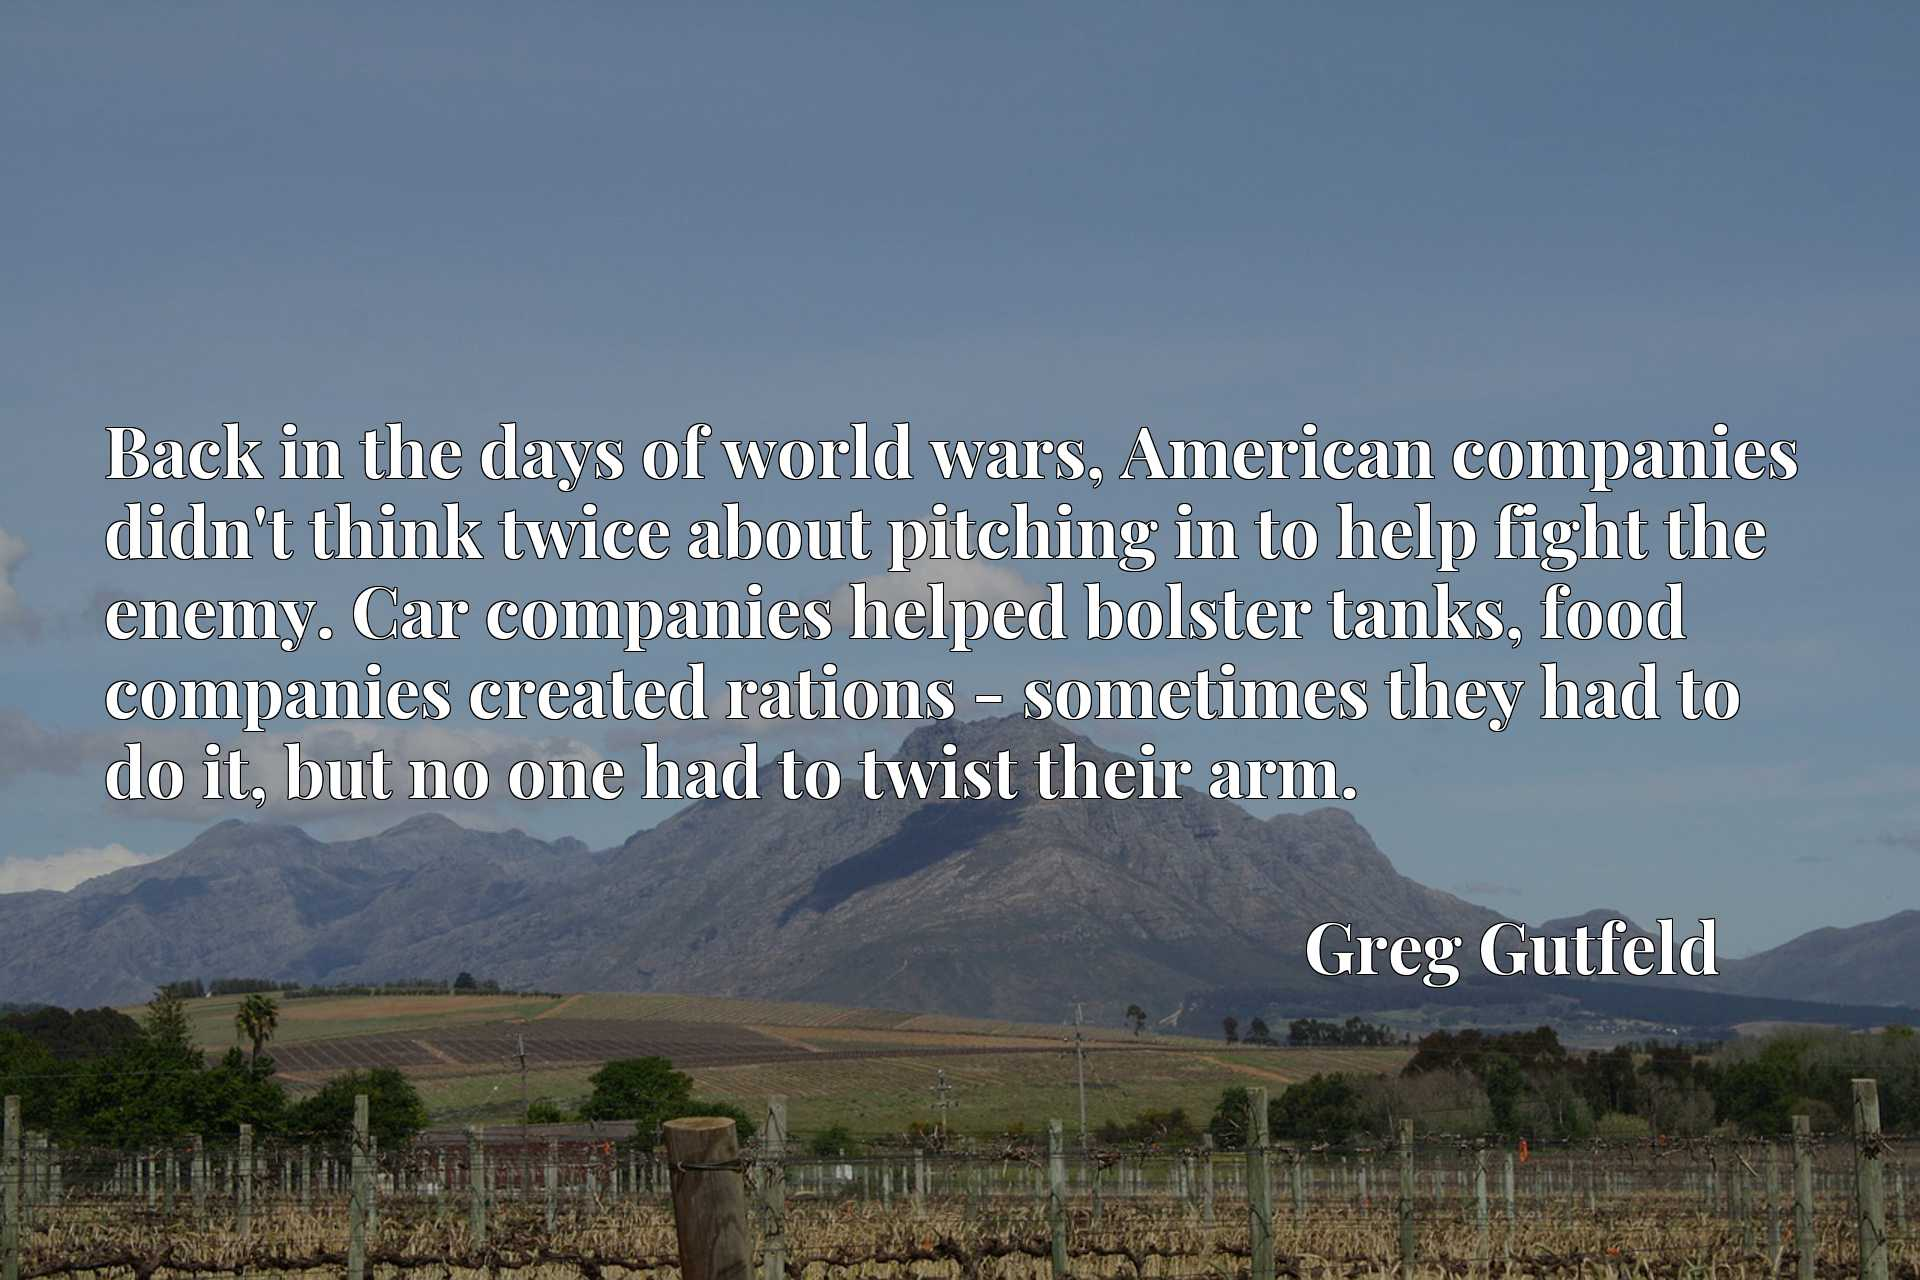 Back in the days of world wars, American companies didn't think twice about pitching in to help fight the enemy. Car companies helped bolster tanks, food companies created rations - sometimes they had to do it, but no one had to twist their arm.